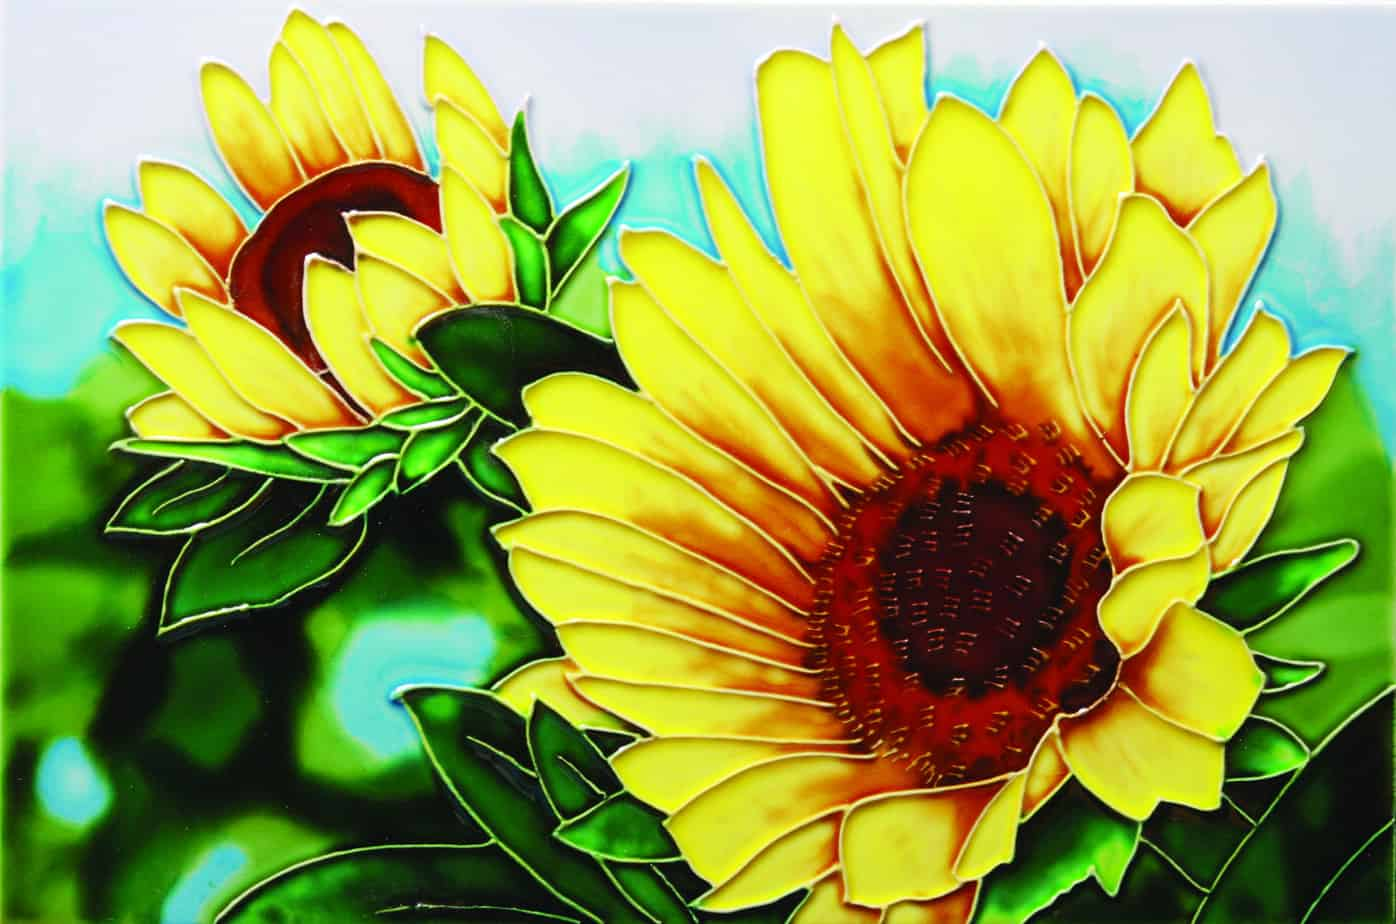 Sunflower Garden 8×12 (104706)